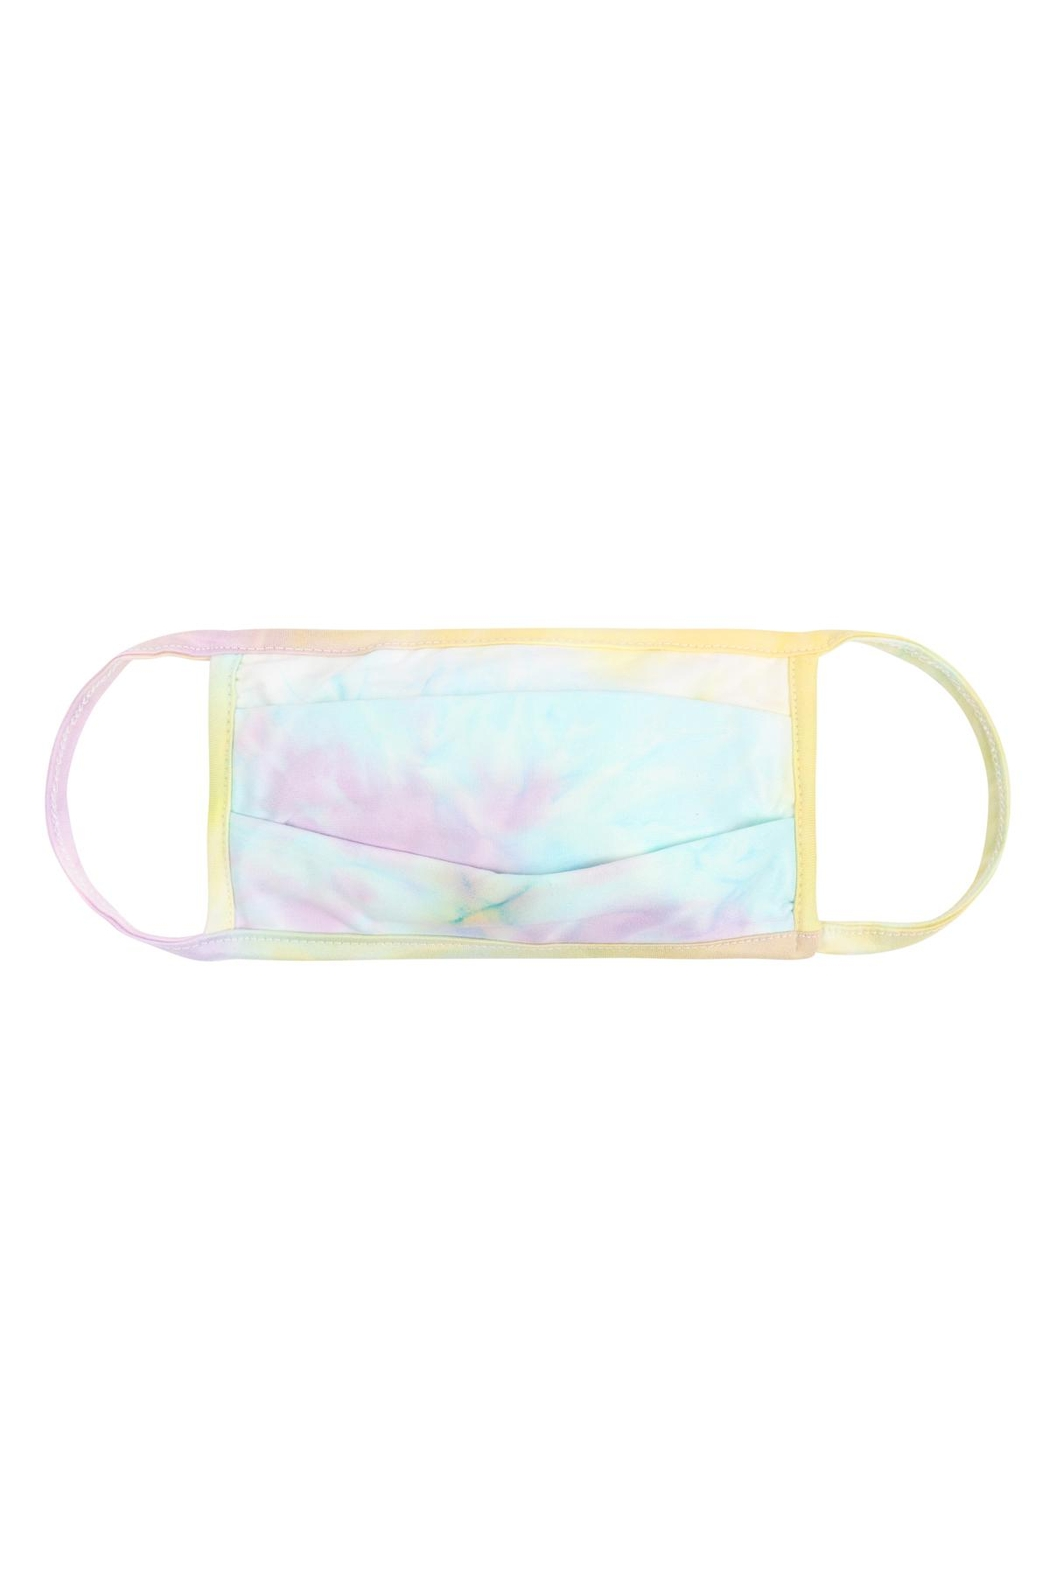 Riah Fashion Tie-Dye-Reusable-Pleated-Face-Masks-For-Adults - Front Cropped Image